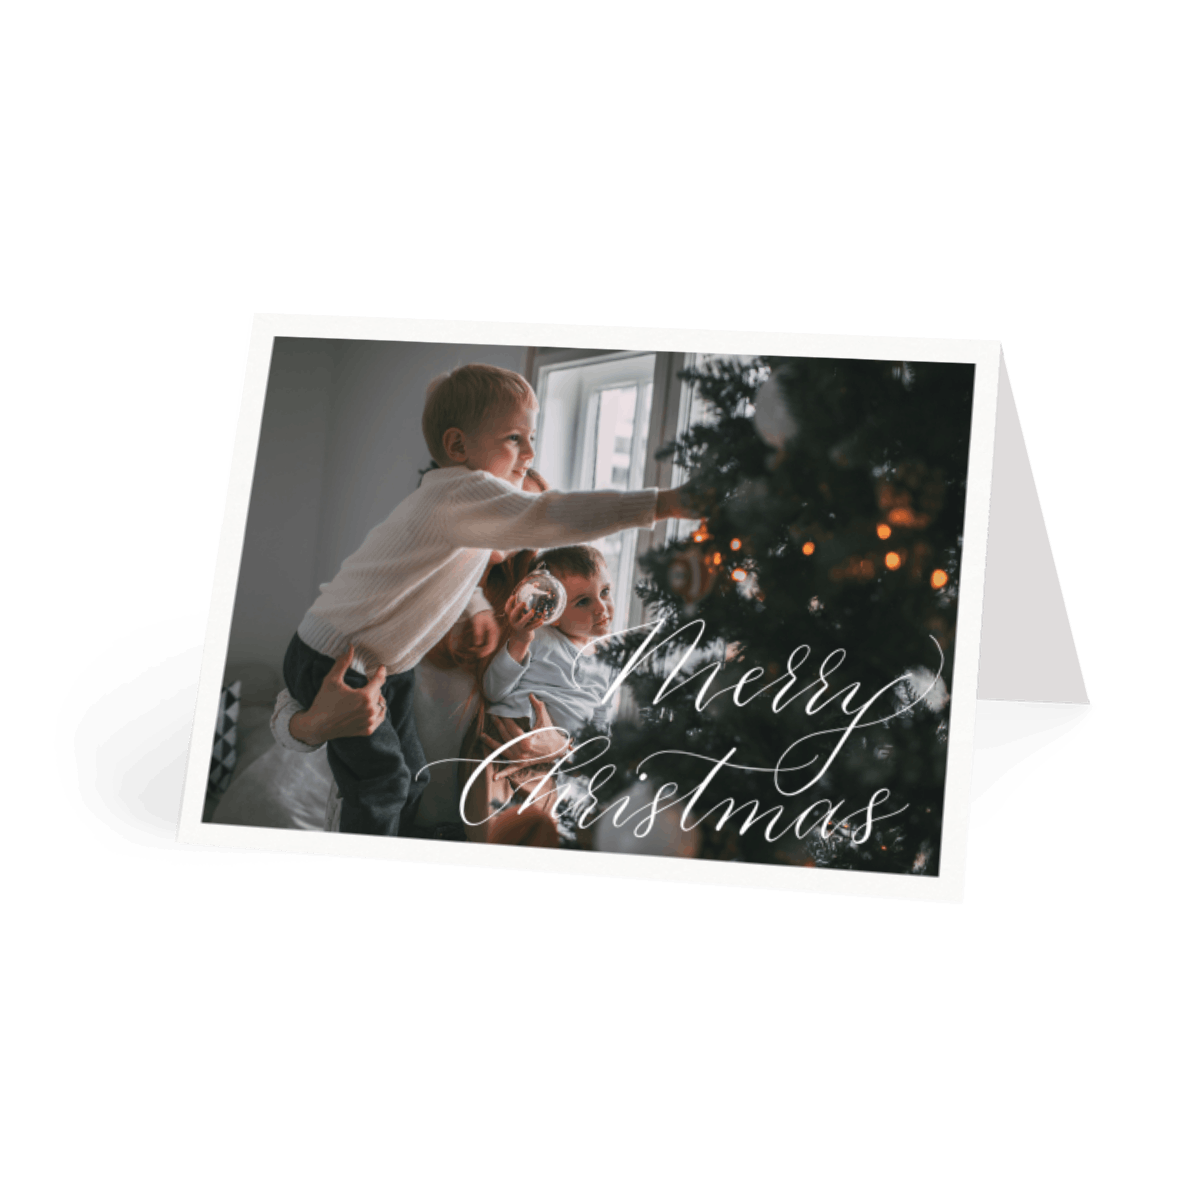 Https%3a%2f%2fwww.papier.com%2fproduct image%2f89364%2f14%2fmerry christmas 22422 front 1569591439.png?ixlib=rb 1.1